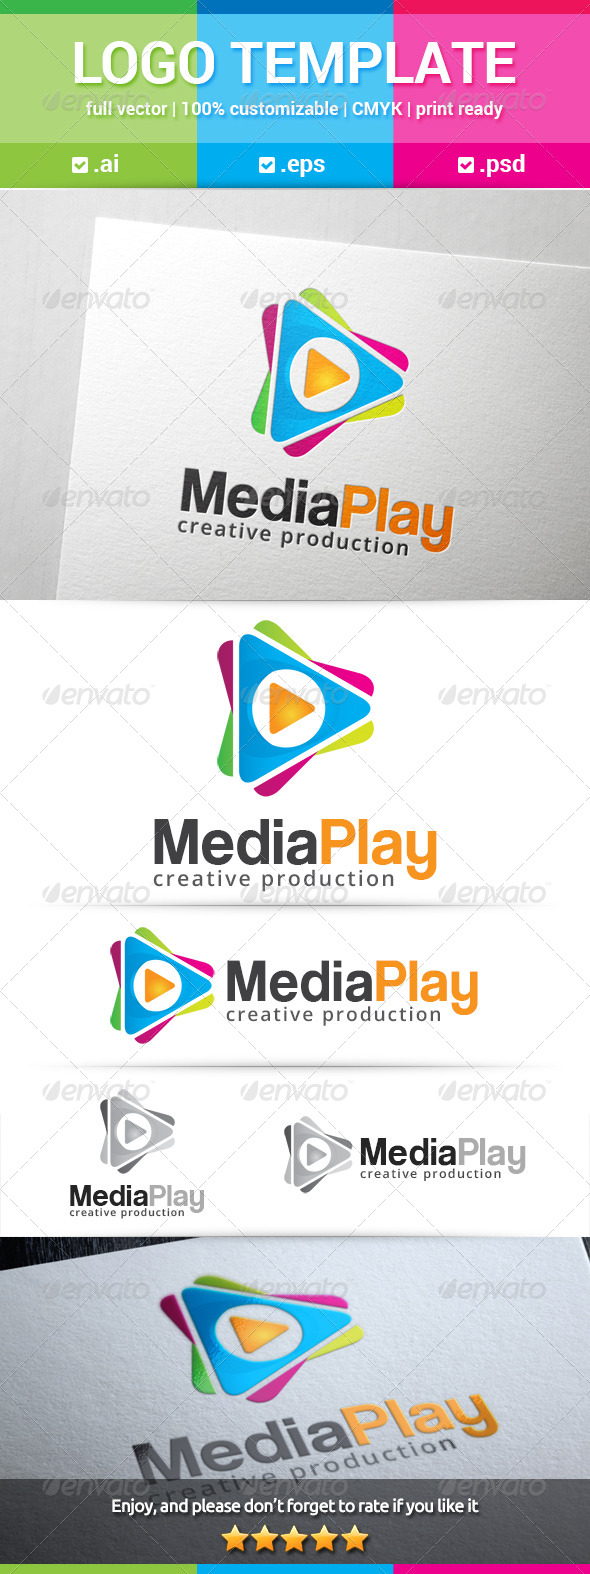 GraphicRiver Media Play Logo 8321356